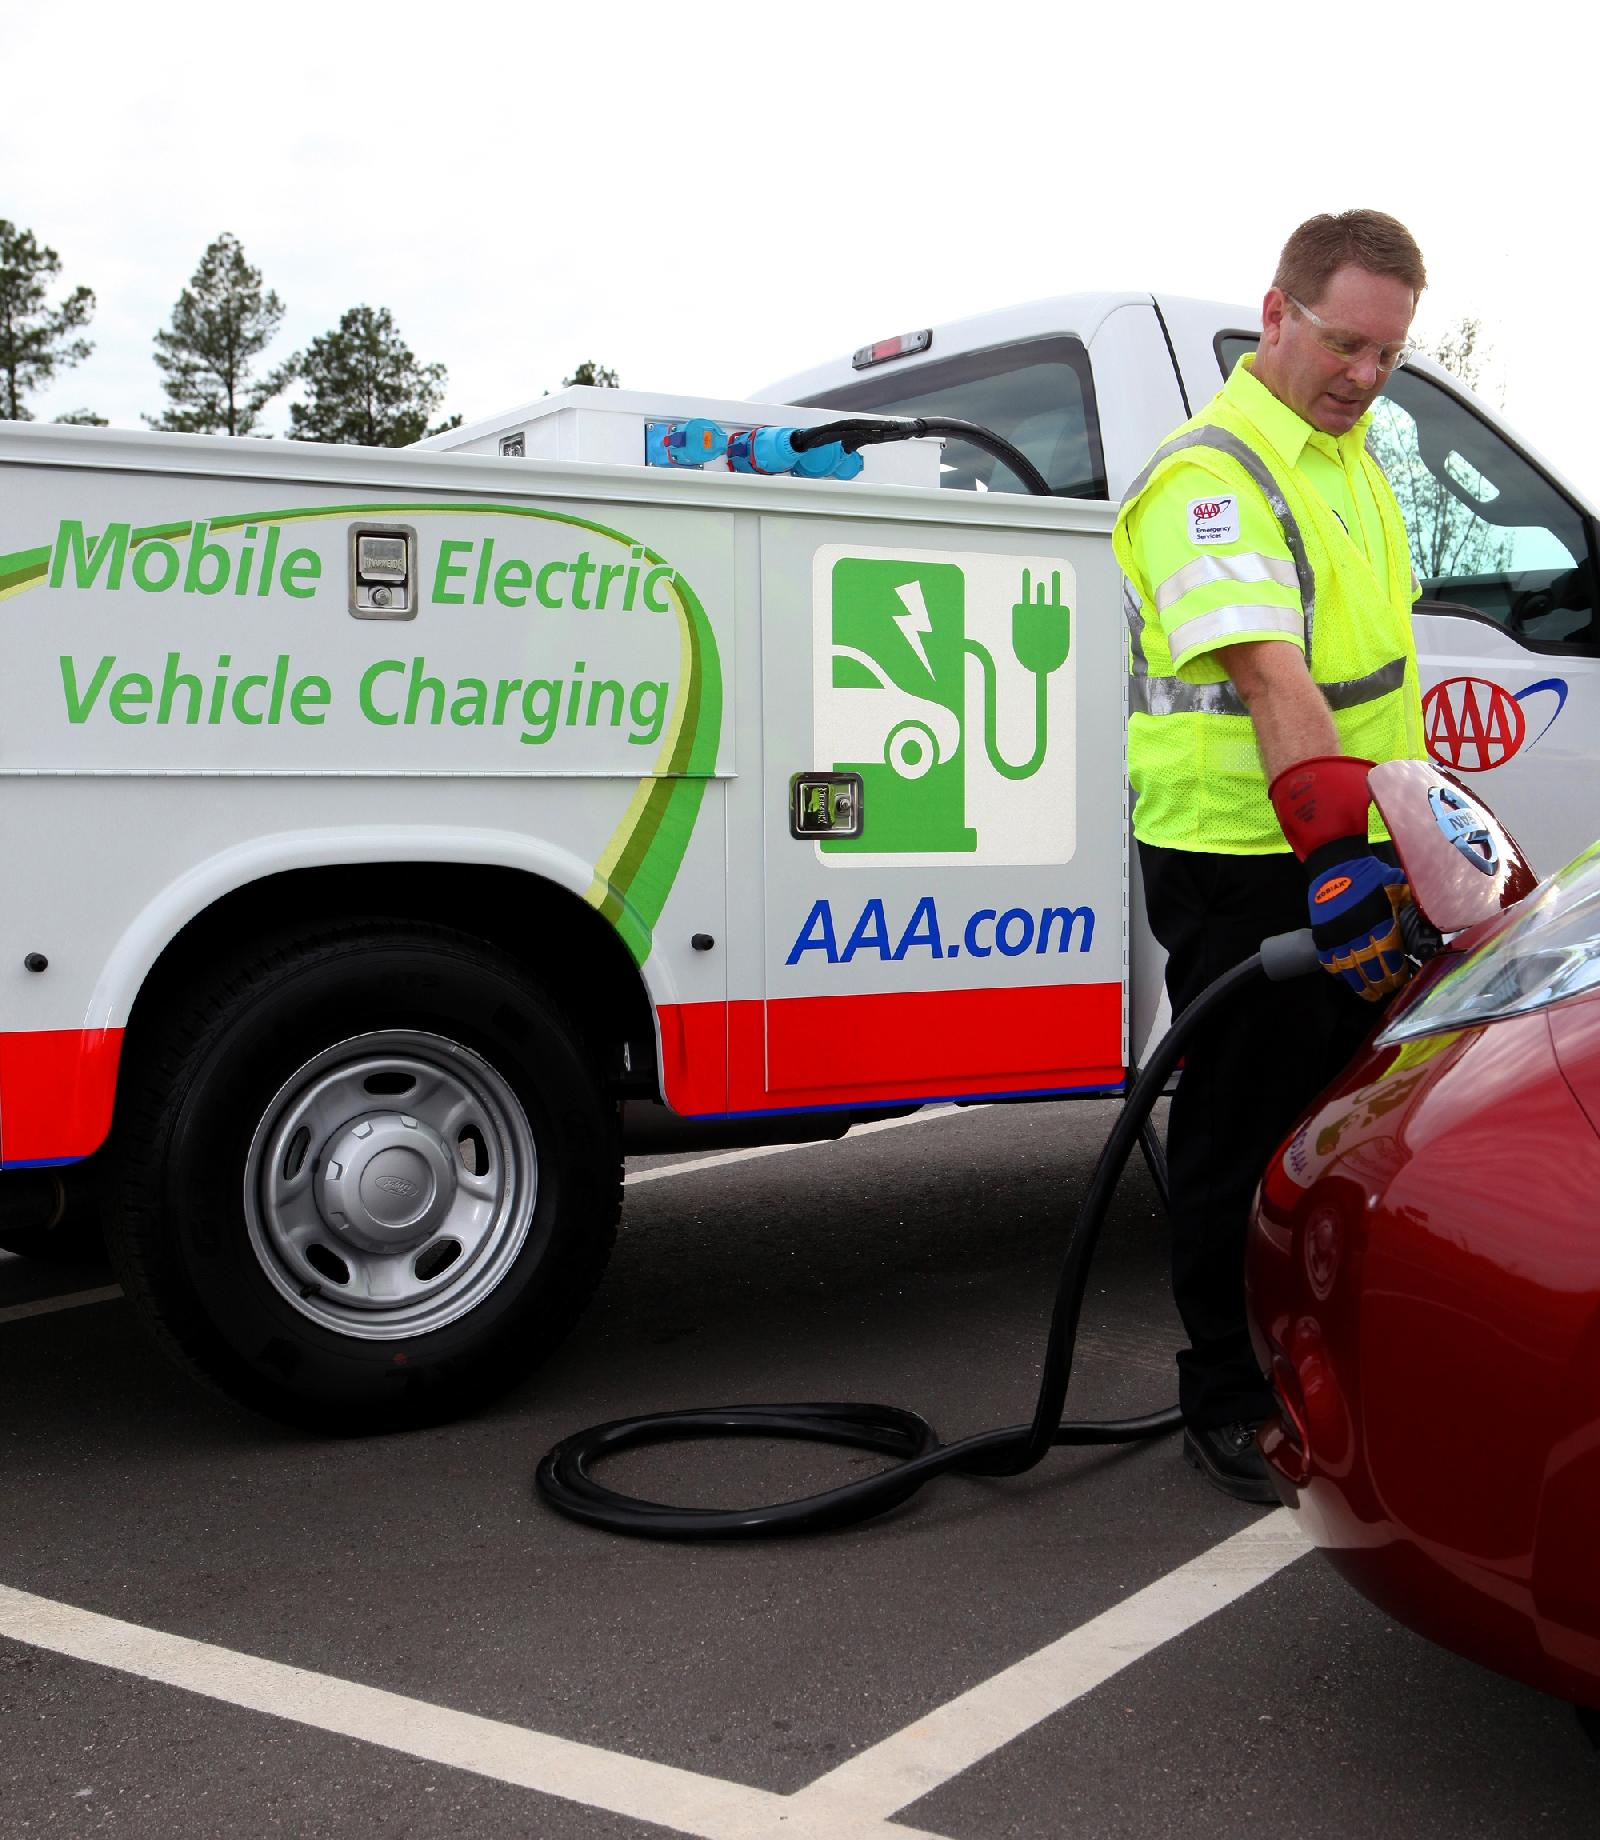 Scrap Car Buyers >> Your Electric Car Out Of Juice? AAA Tests Roadside Recharging